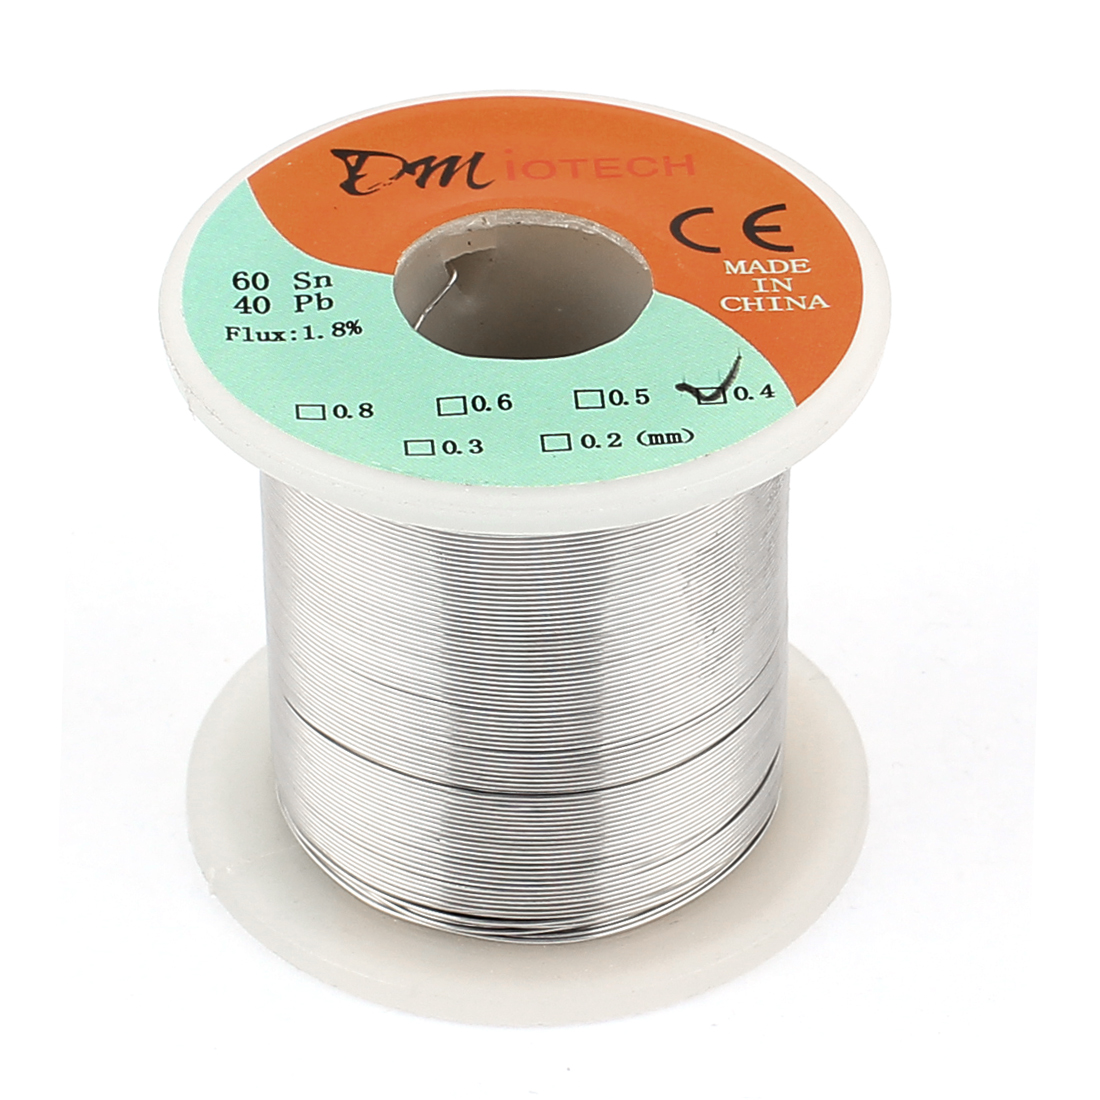 0.4mm 200G 60/40 Rosin Core Tin Lead Roll Soldering Solder Wire